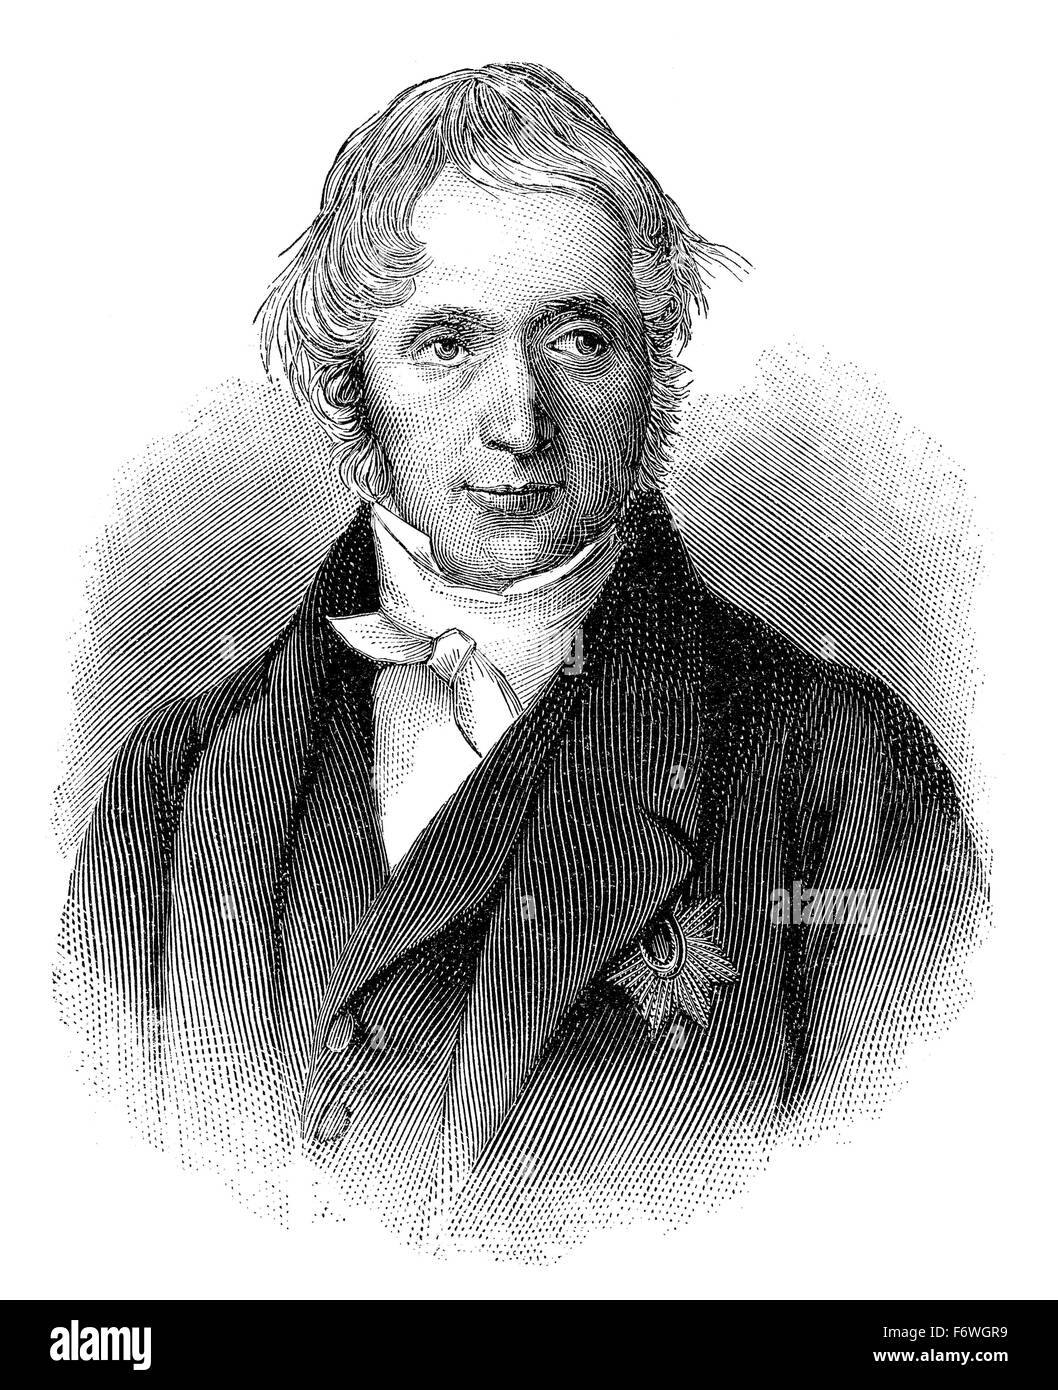 Karl Georg Maassen, 1769 - 1834, a Prussian lawyer, politician and co-founder of the German customs union, Karl - Stock Image